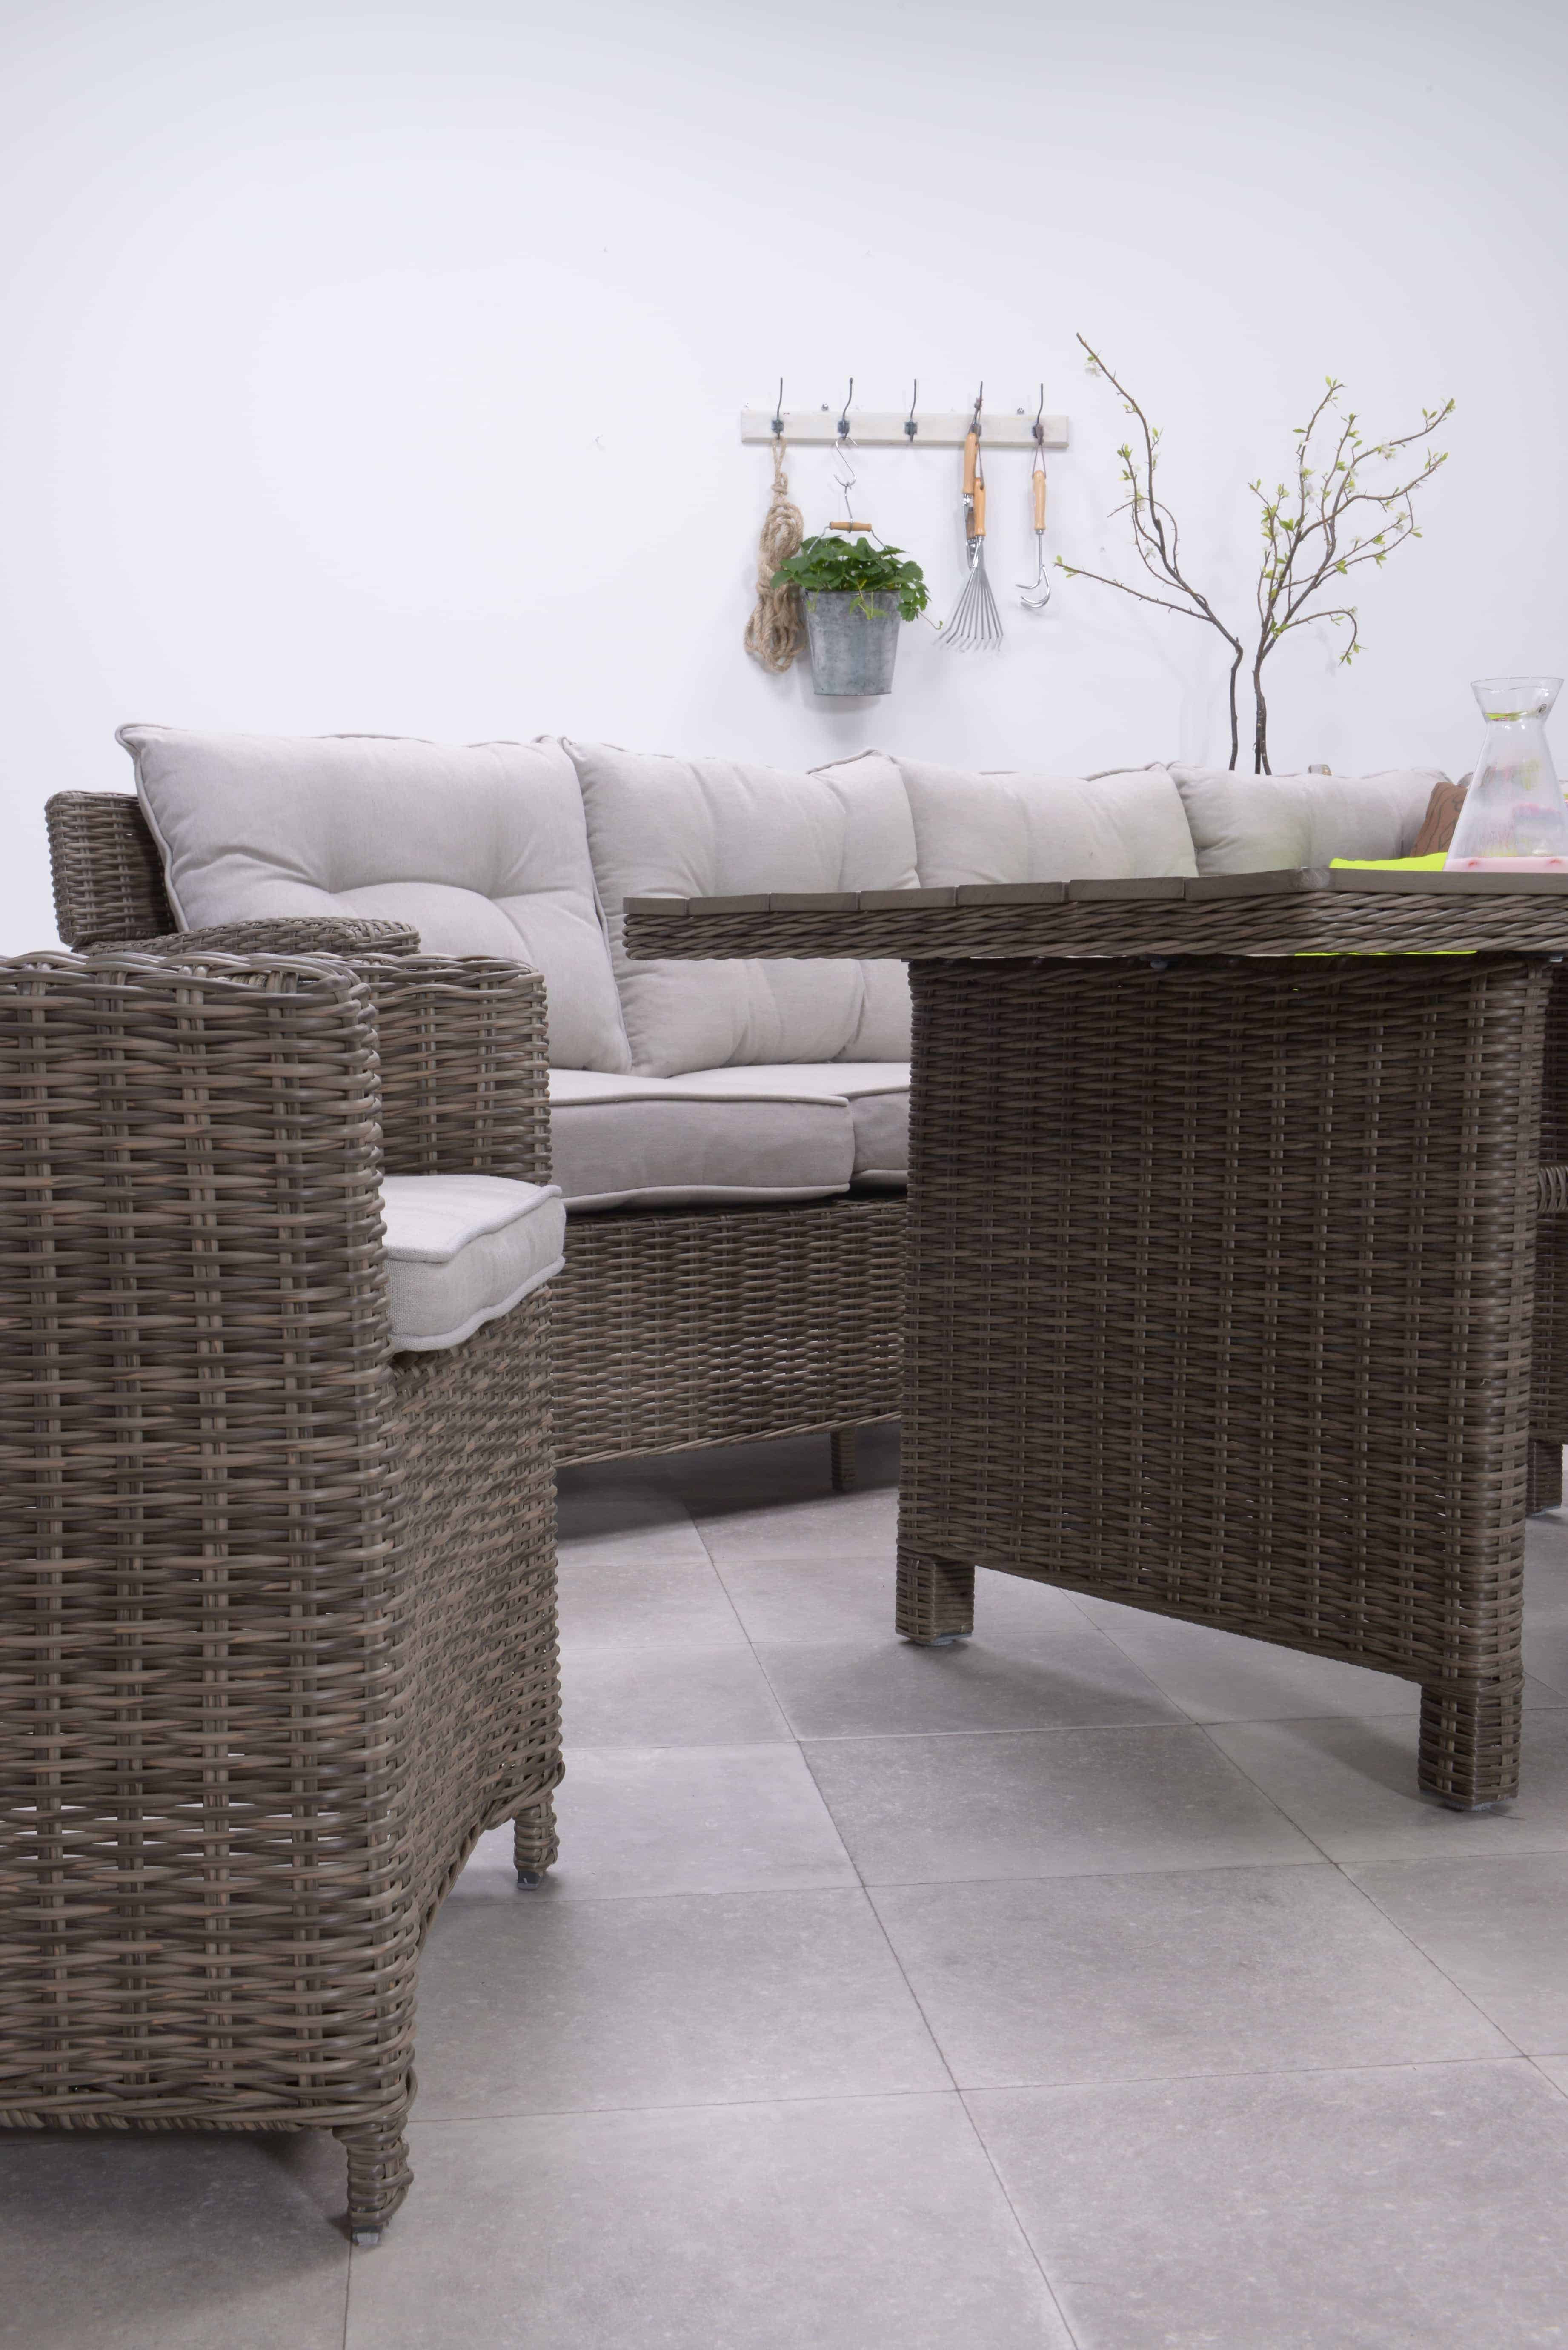 Outdoor Garden Furniture Dublin Ireland Madeira Outdoor Lounge Sofa Dining Set New Kubu